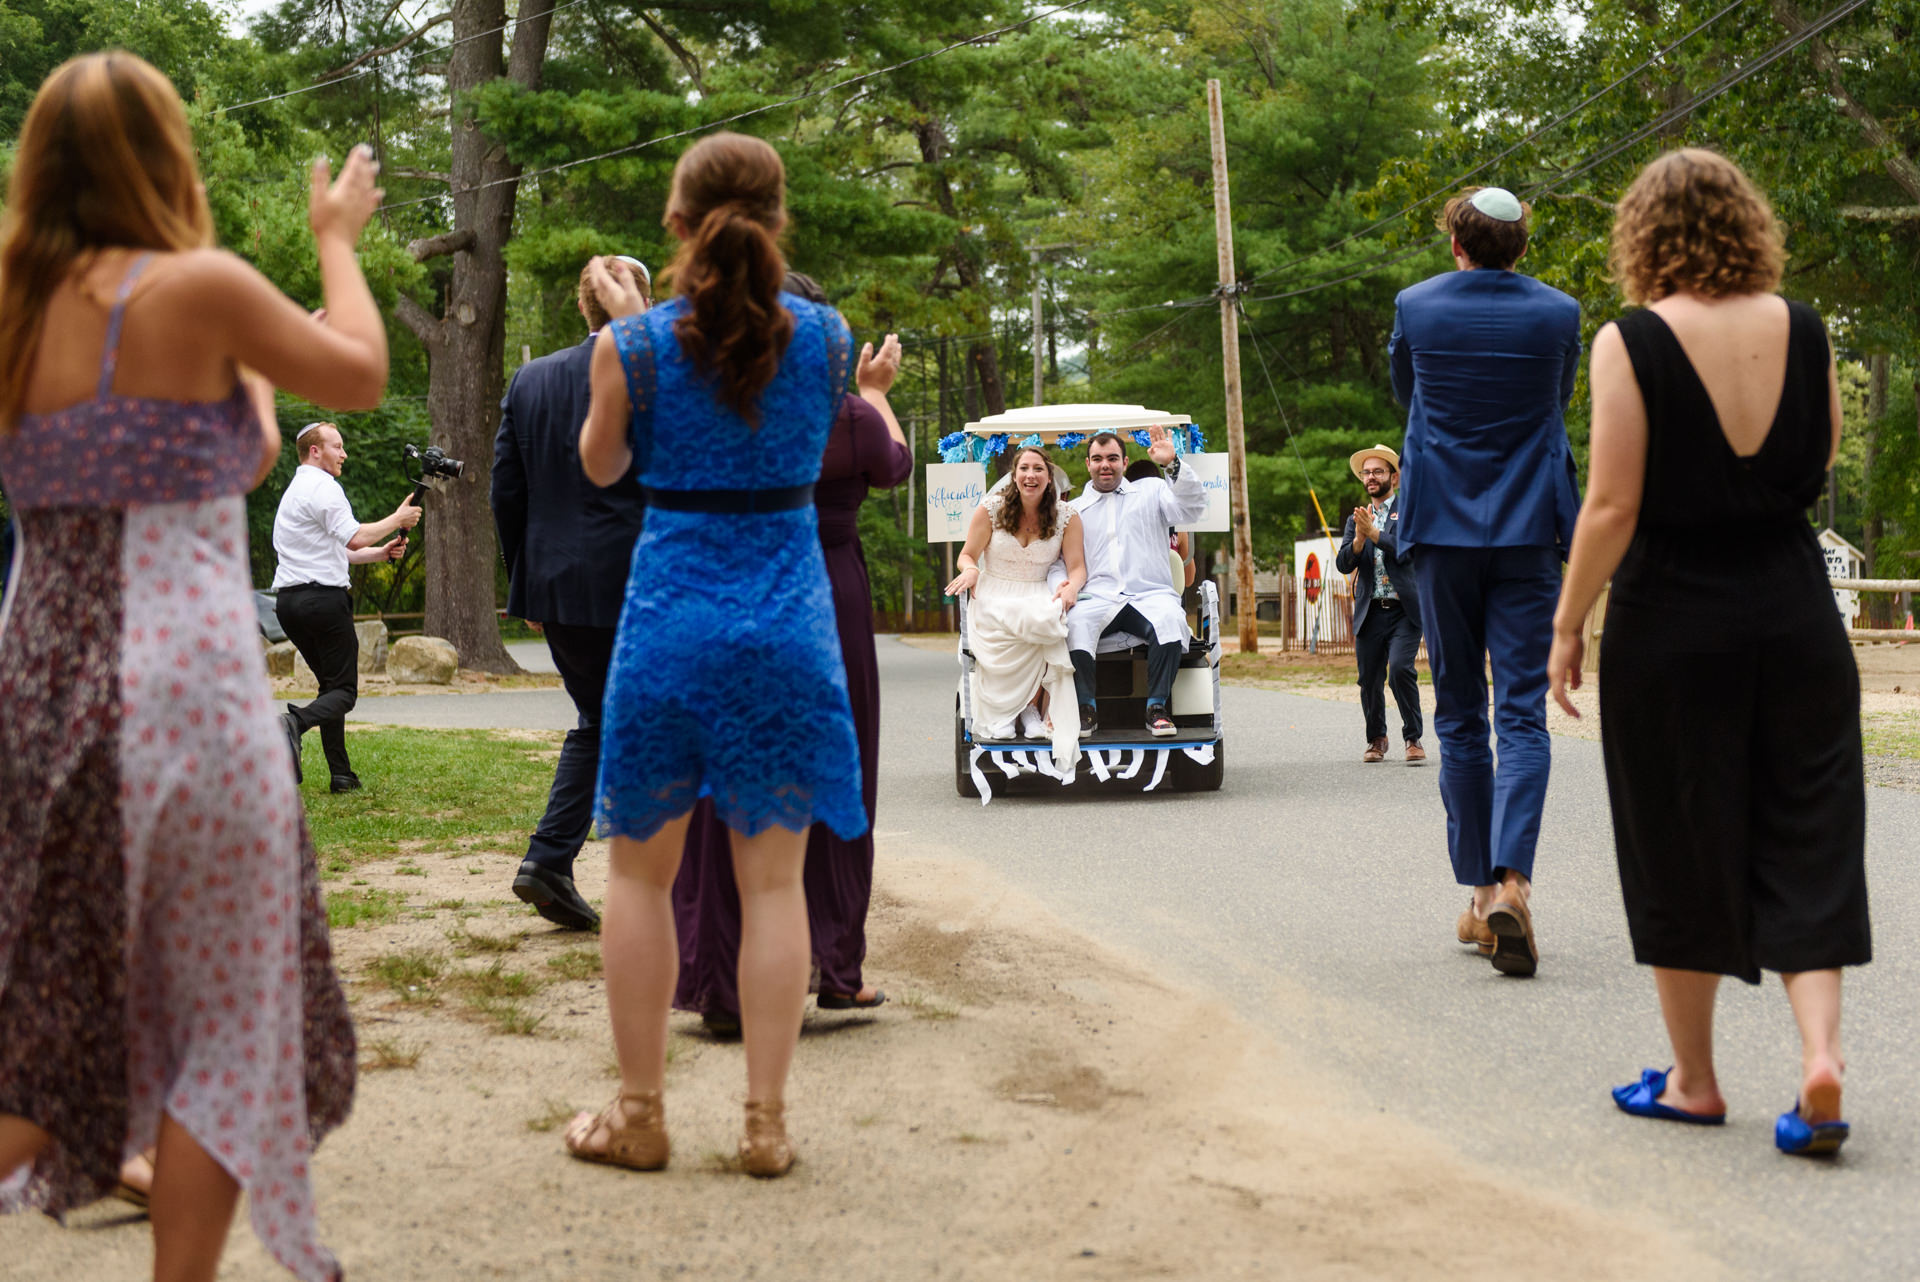 Bride and groom exiting in a golf cart